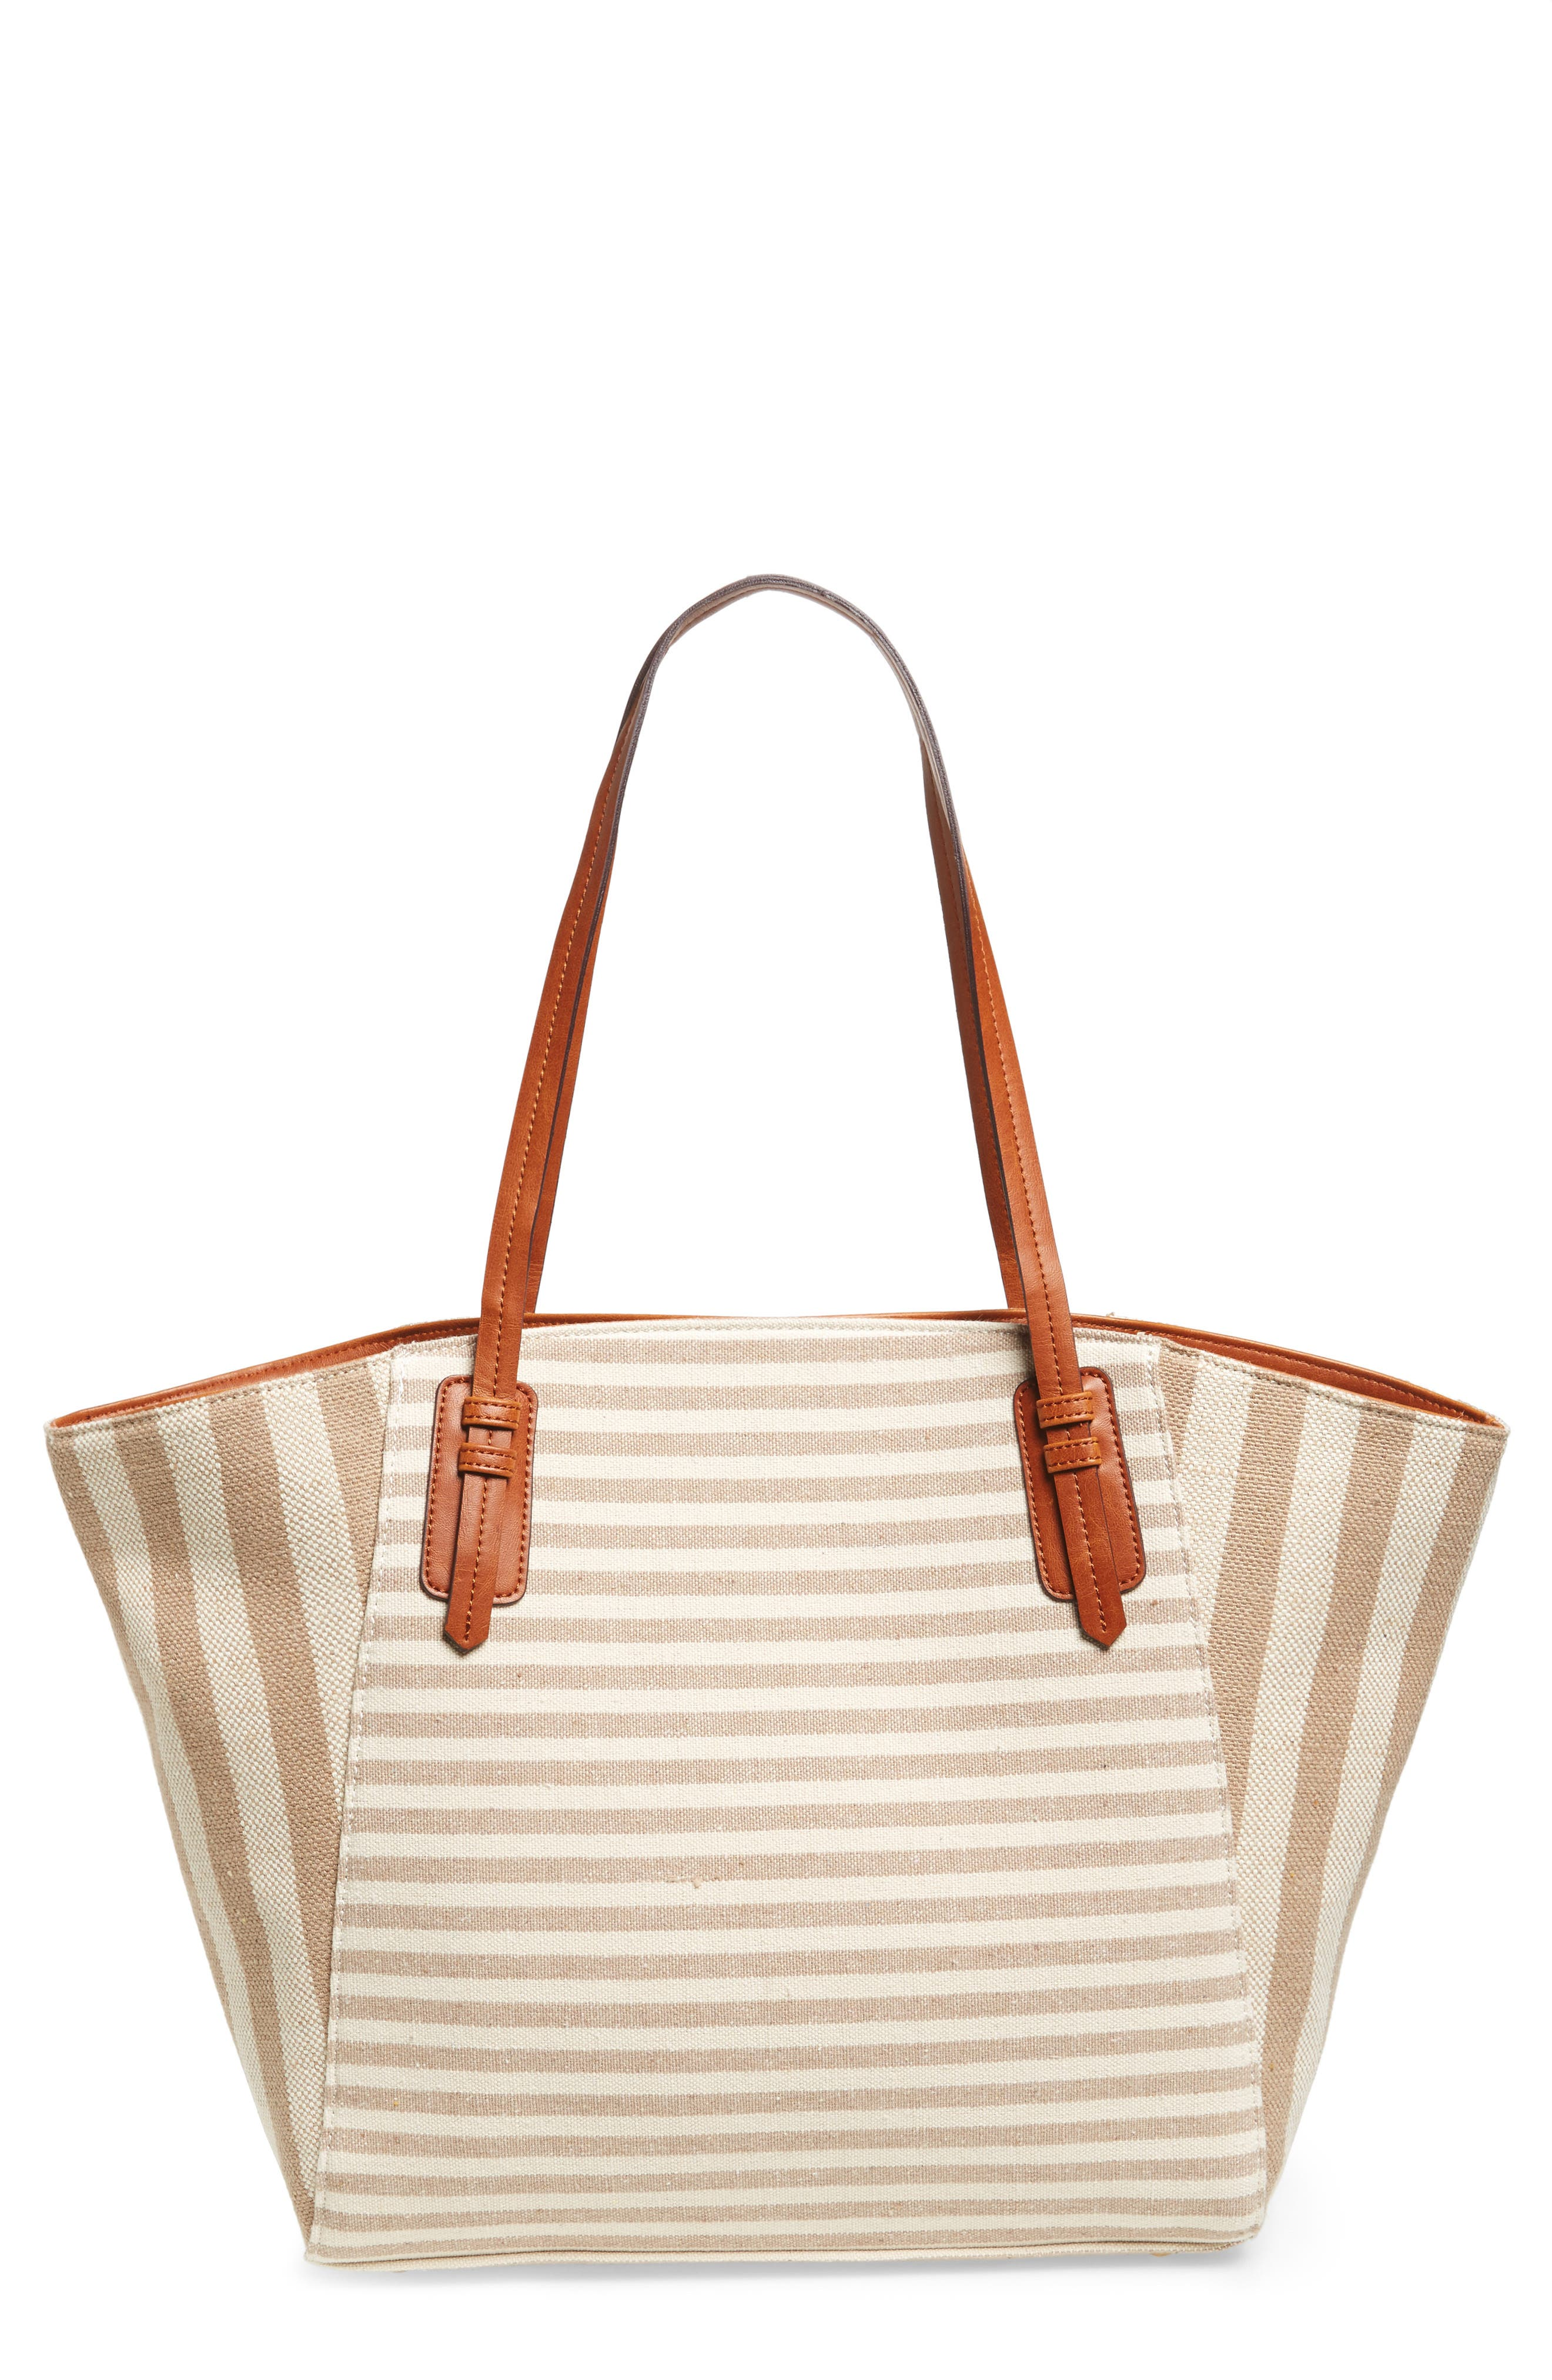 SOLE SOCIETY Rooney Trapeze Tote